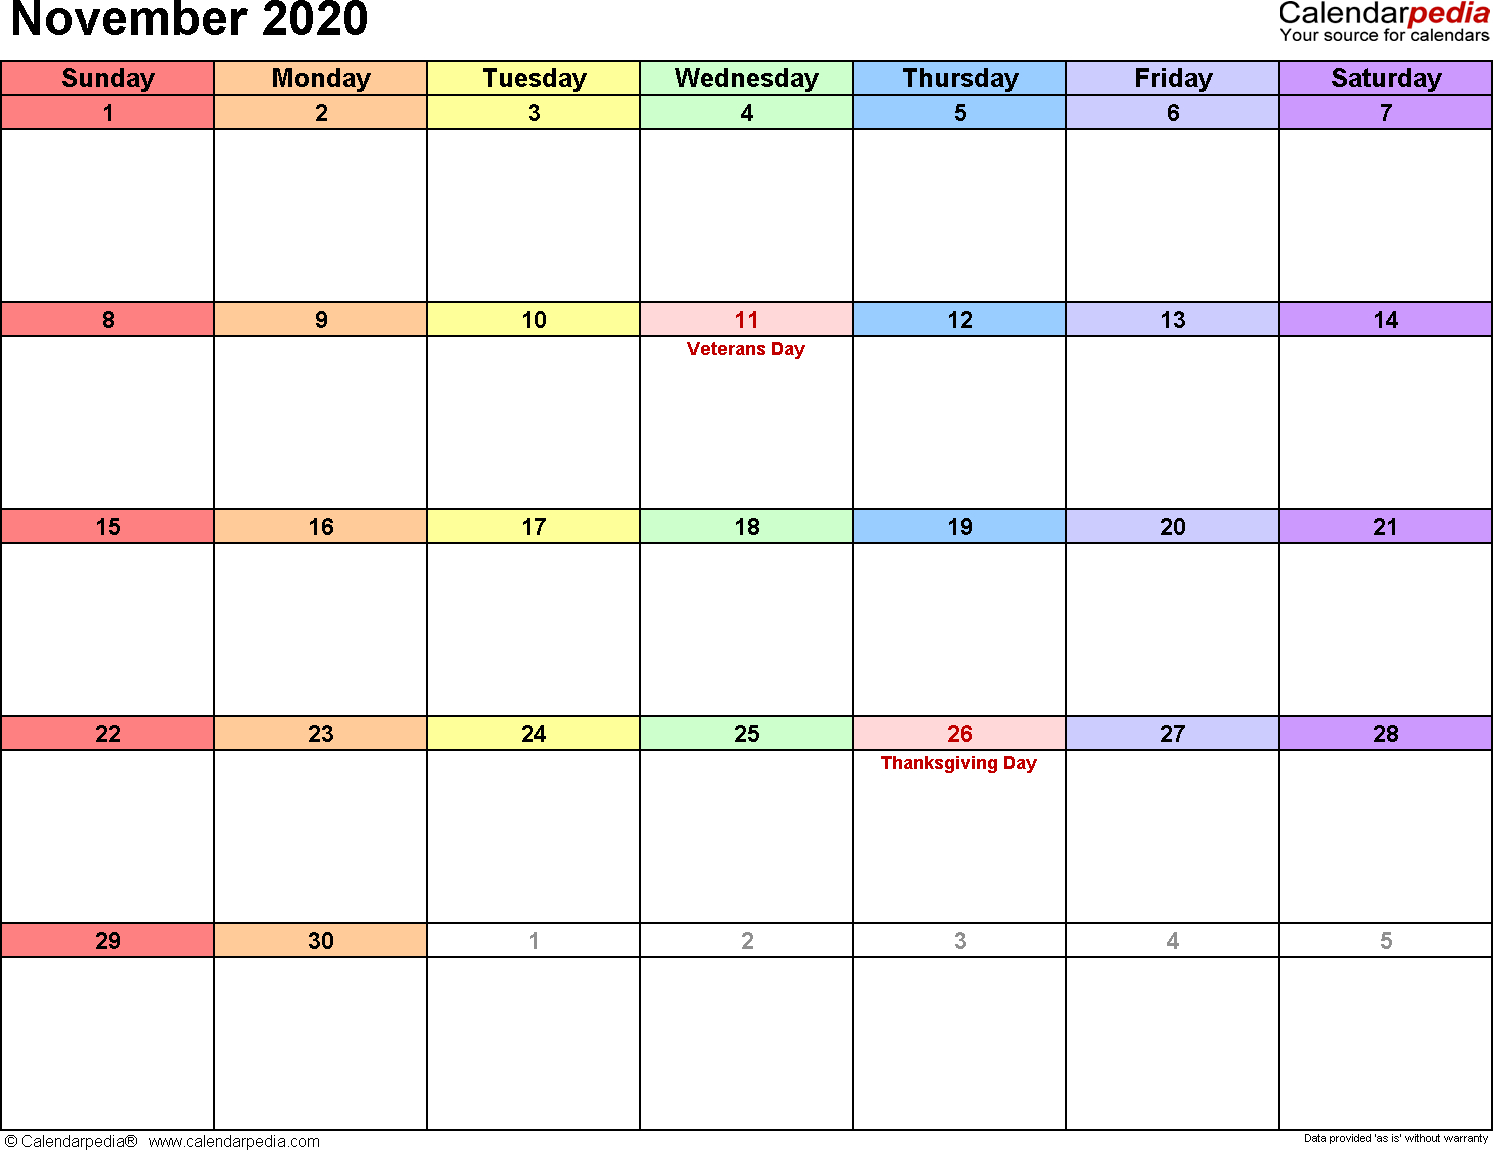 Win Calendar April 2020 - Wpa.wpart.co